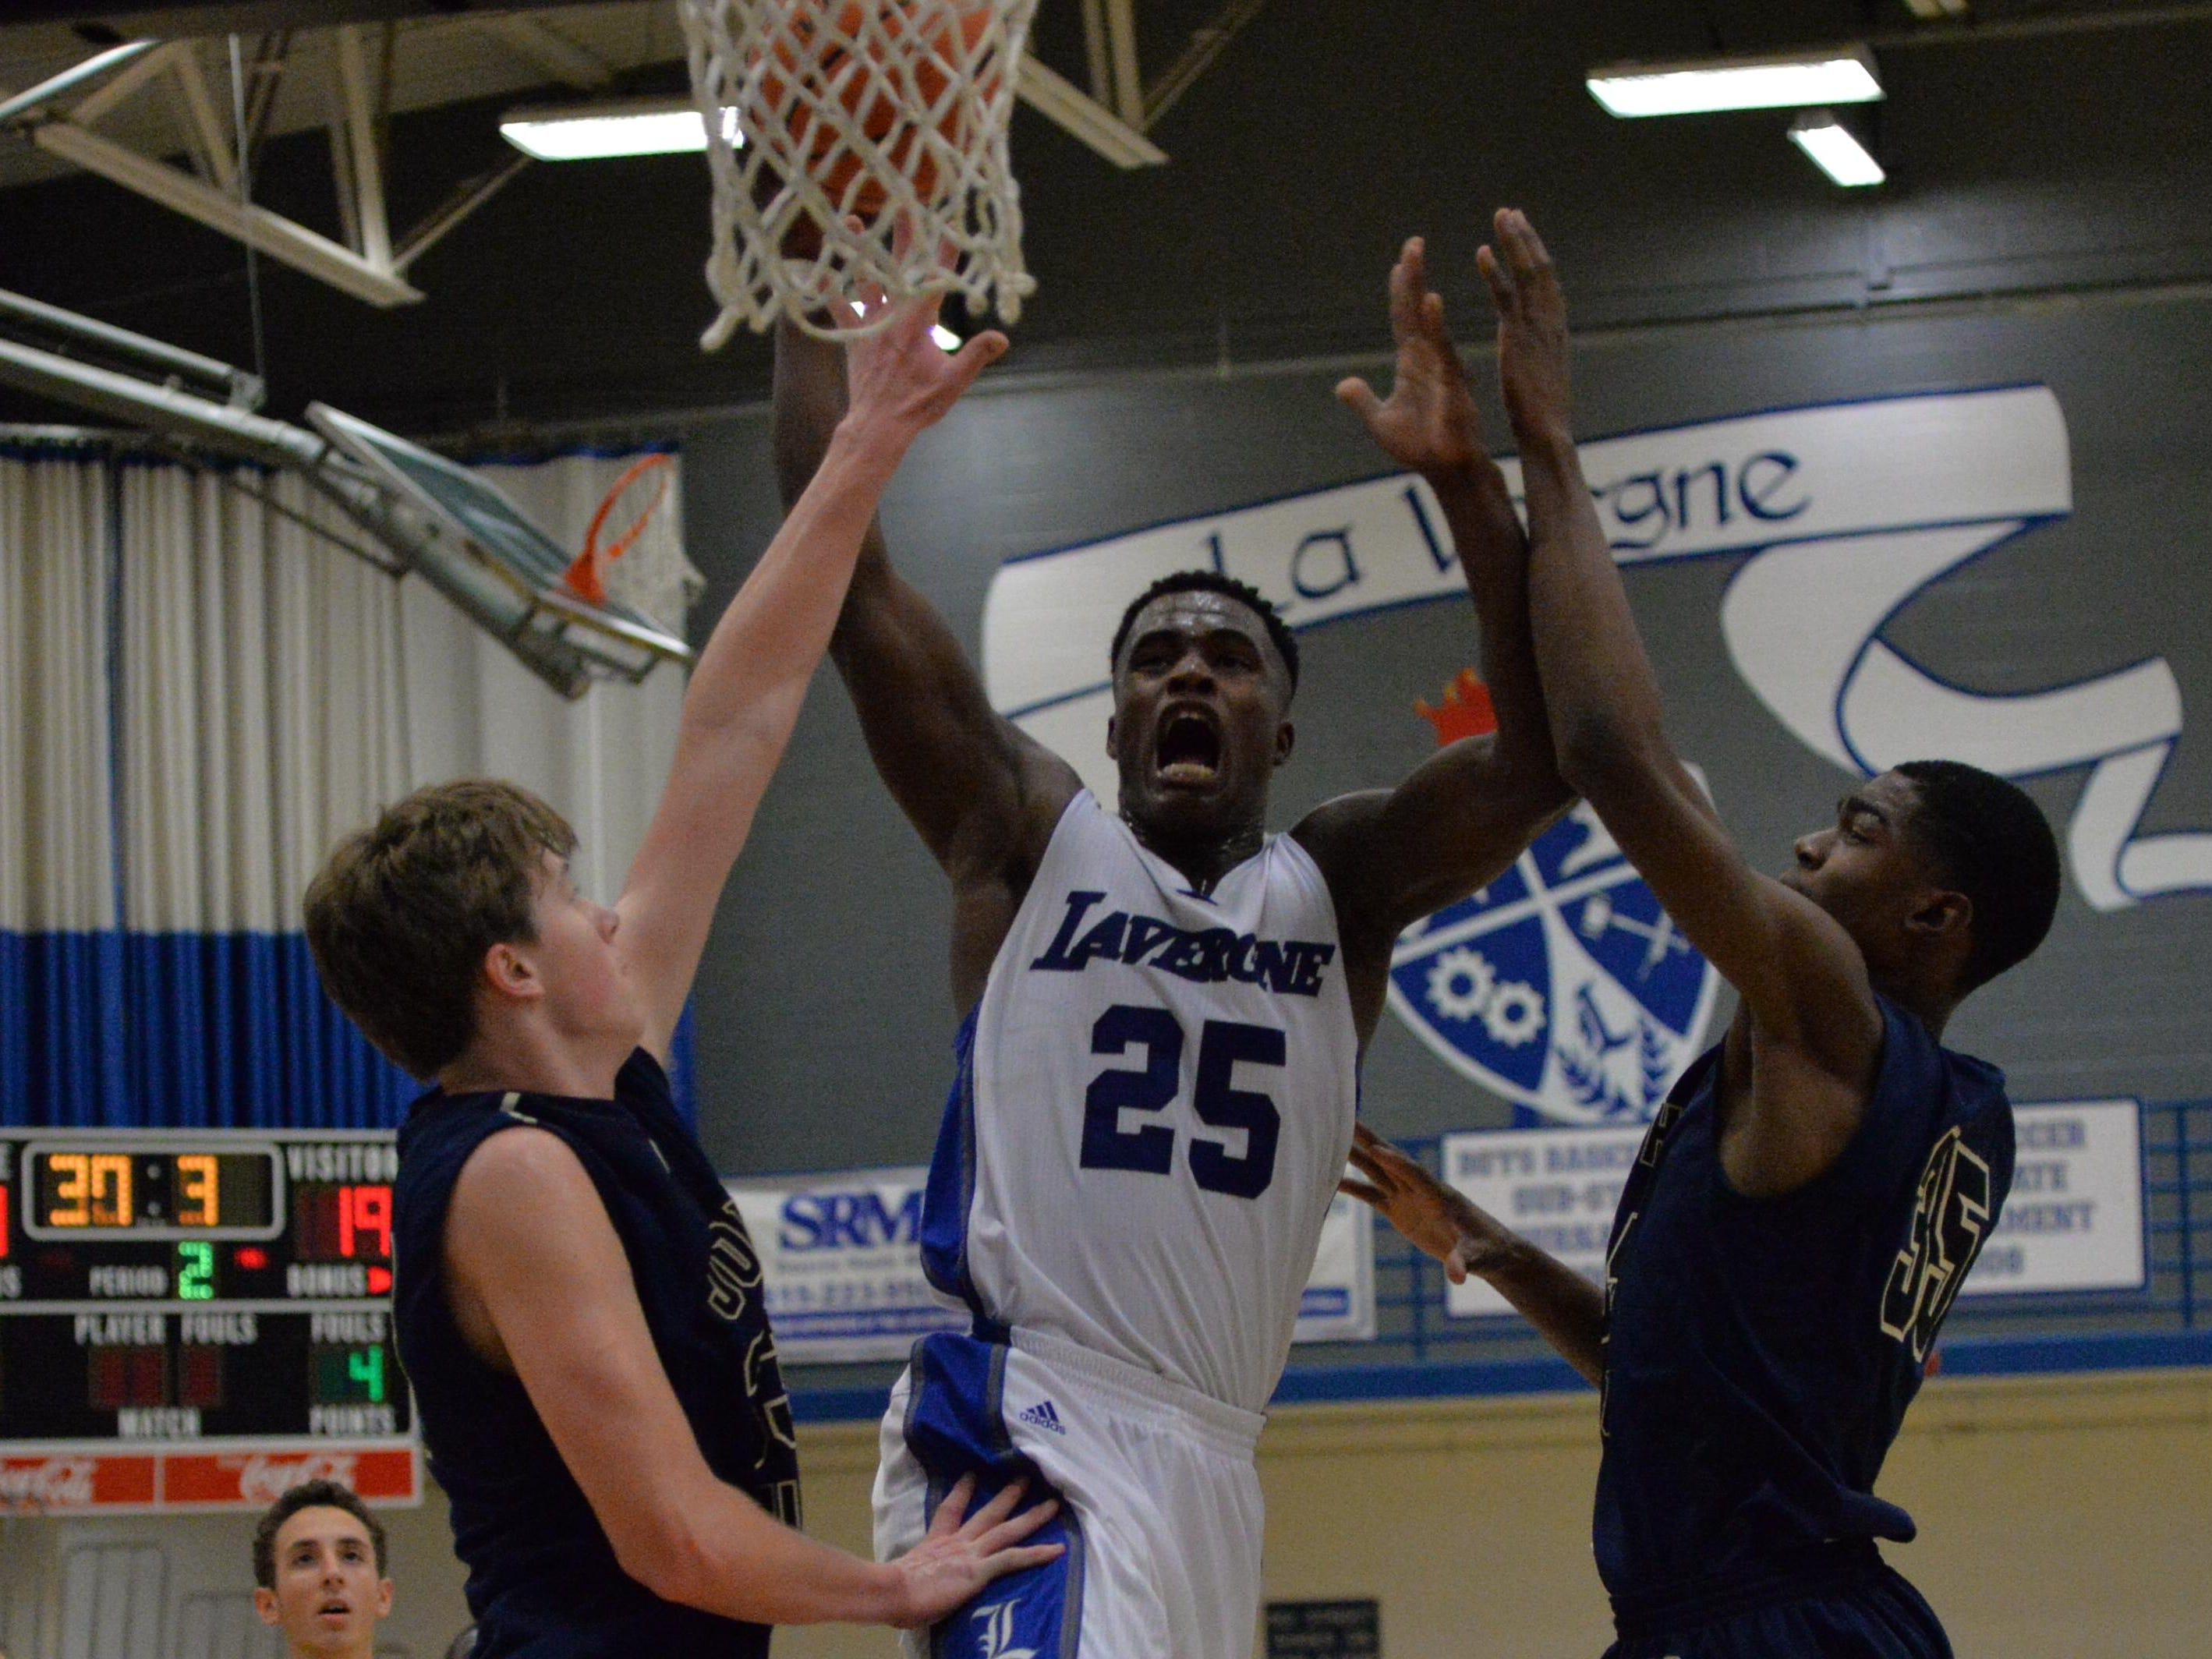 La Vergne's Maleik Gray (25) goes up for a shot against Pope John Paul II during Friday's non-district game.